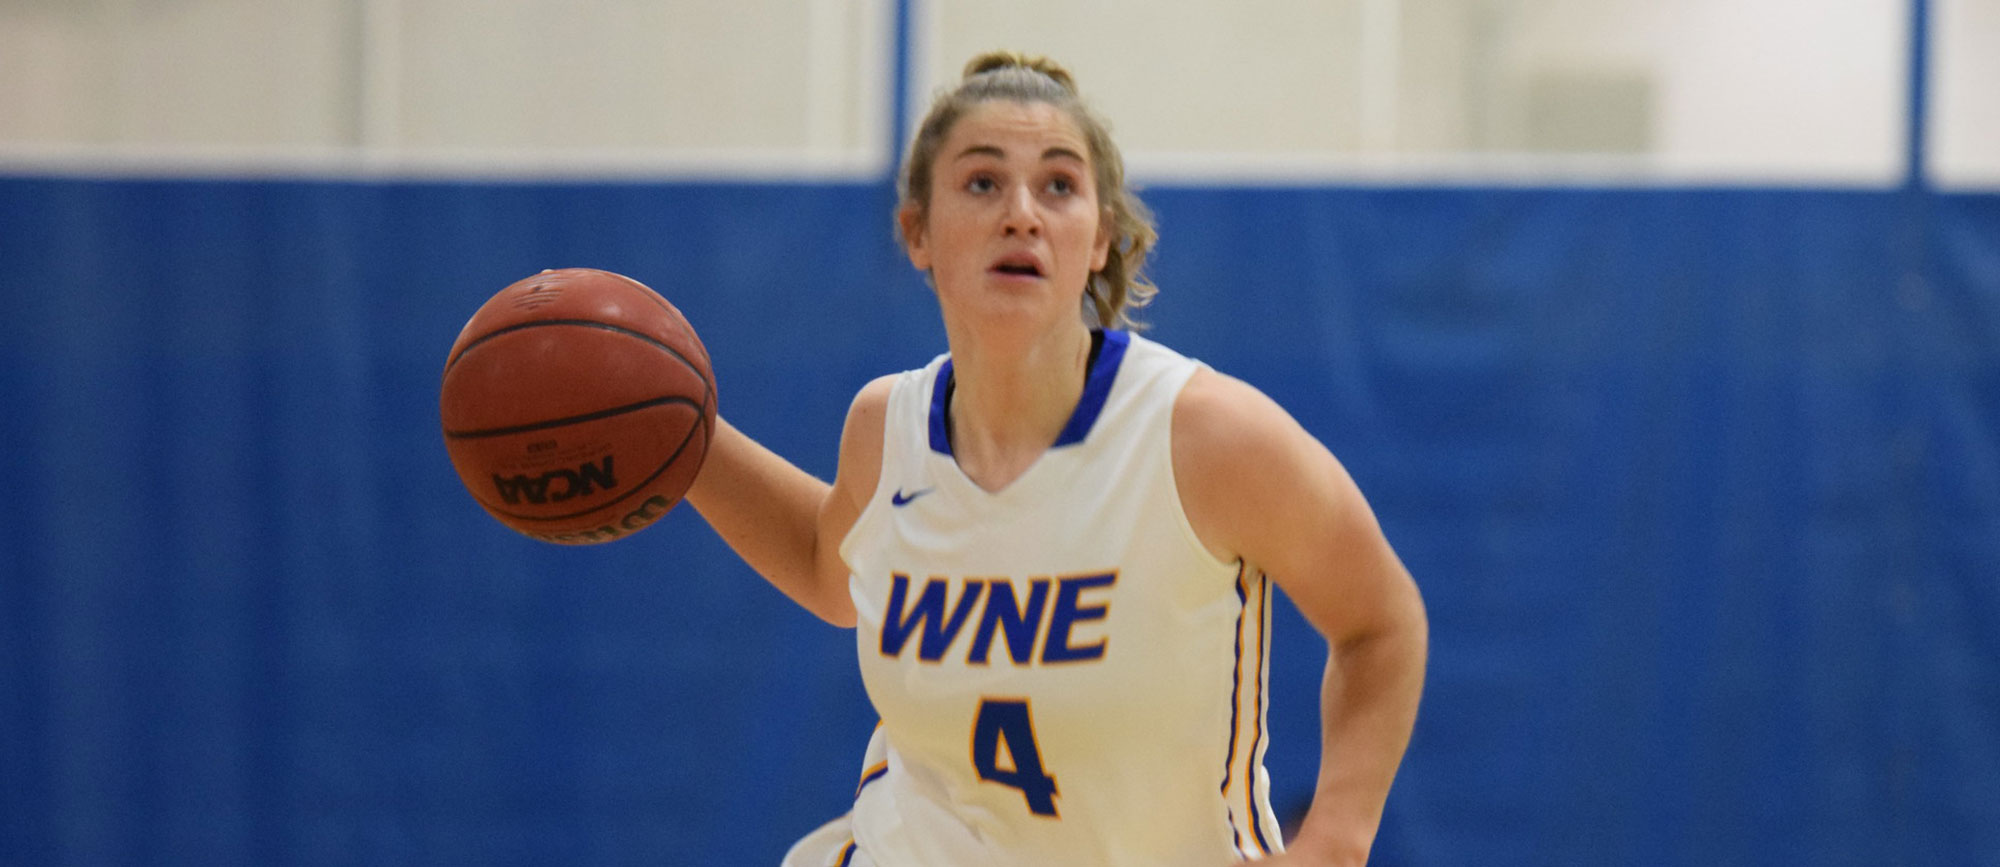 Lauren Chadwick scored a career-high 15 points in a 53-42 win over U. of New England. (Photo by Rachael Margossian)